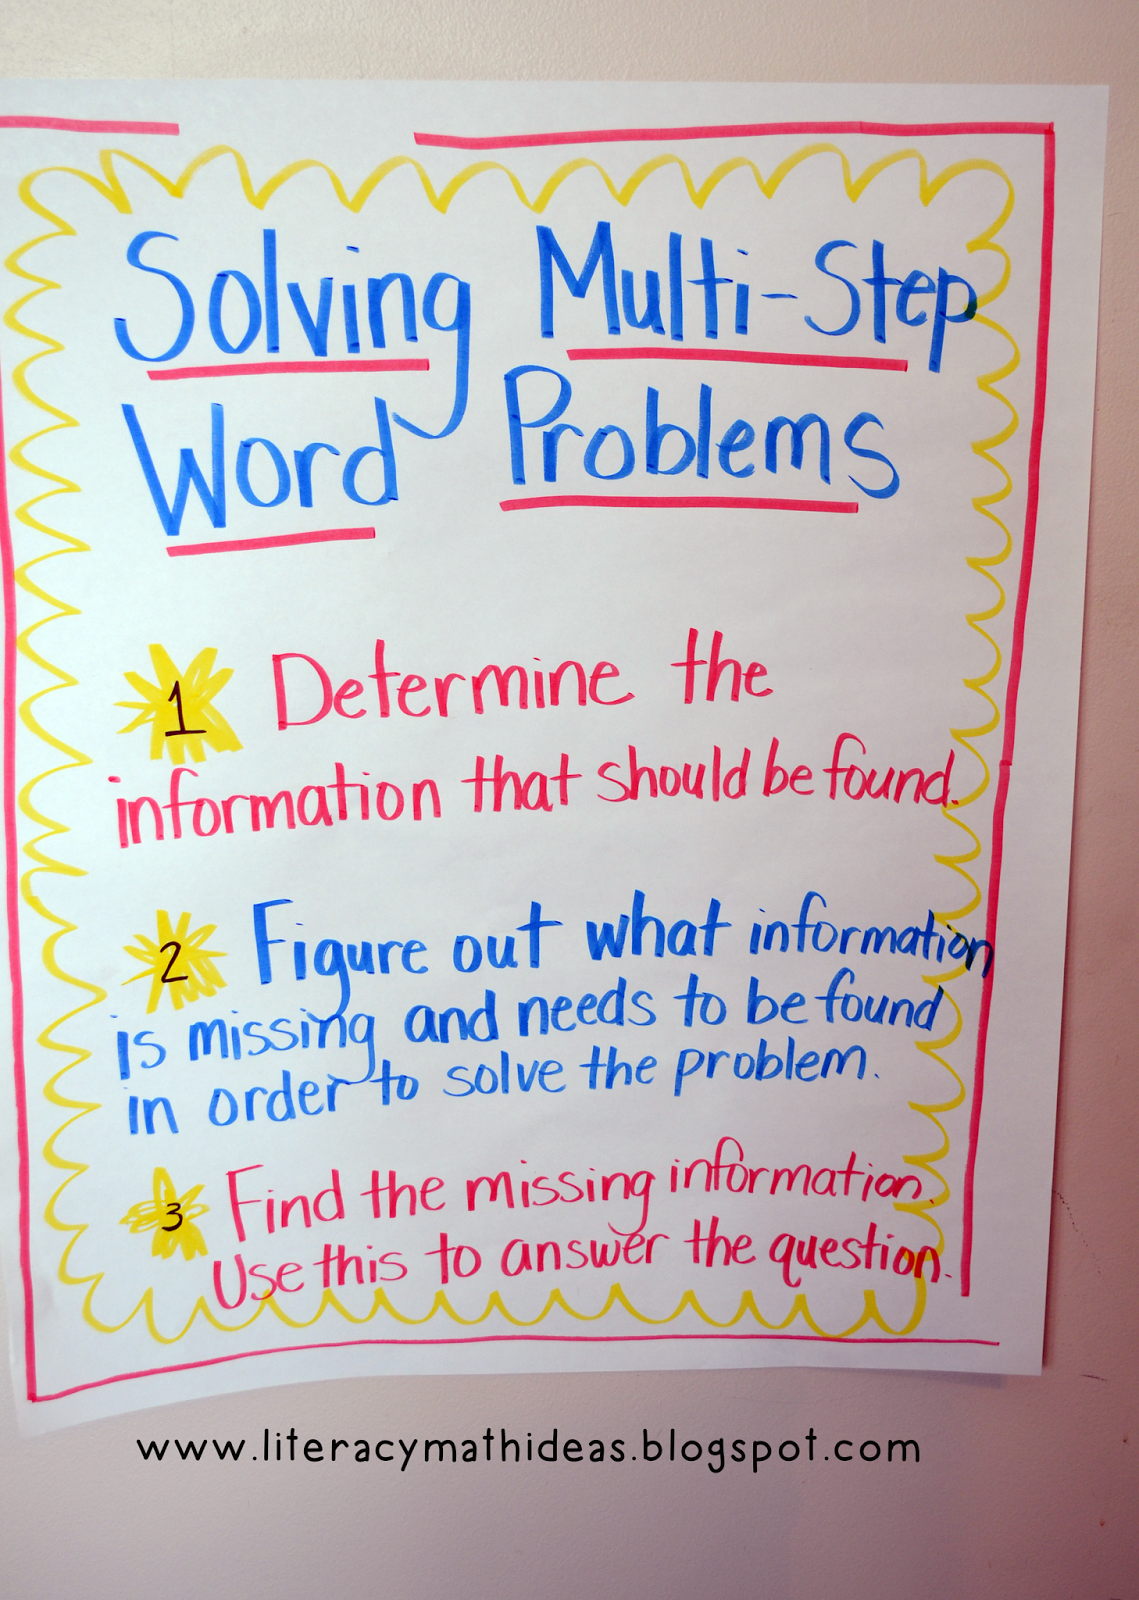 literacy math ideas how to solve multi step word problems [ 1139 x 1600 Pixel ]